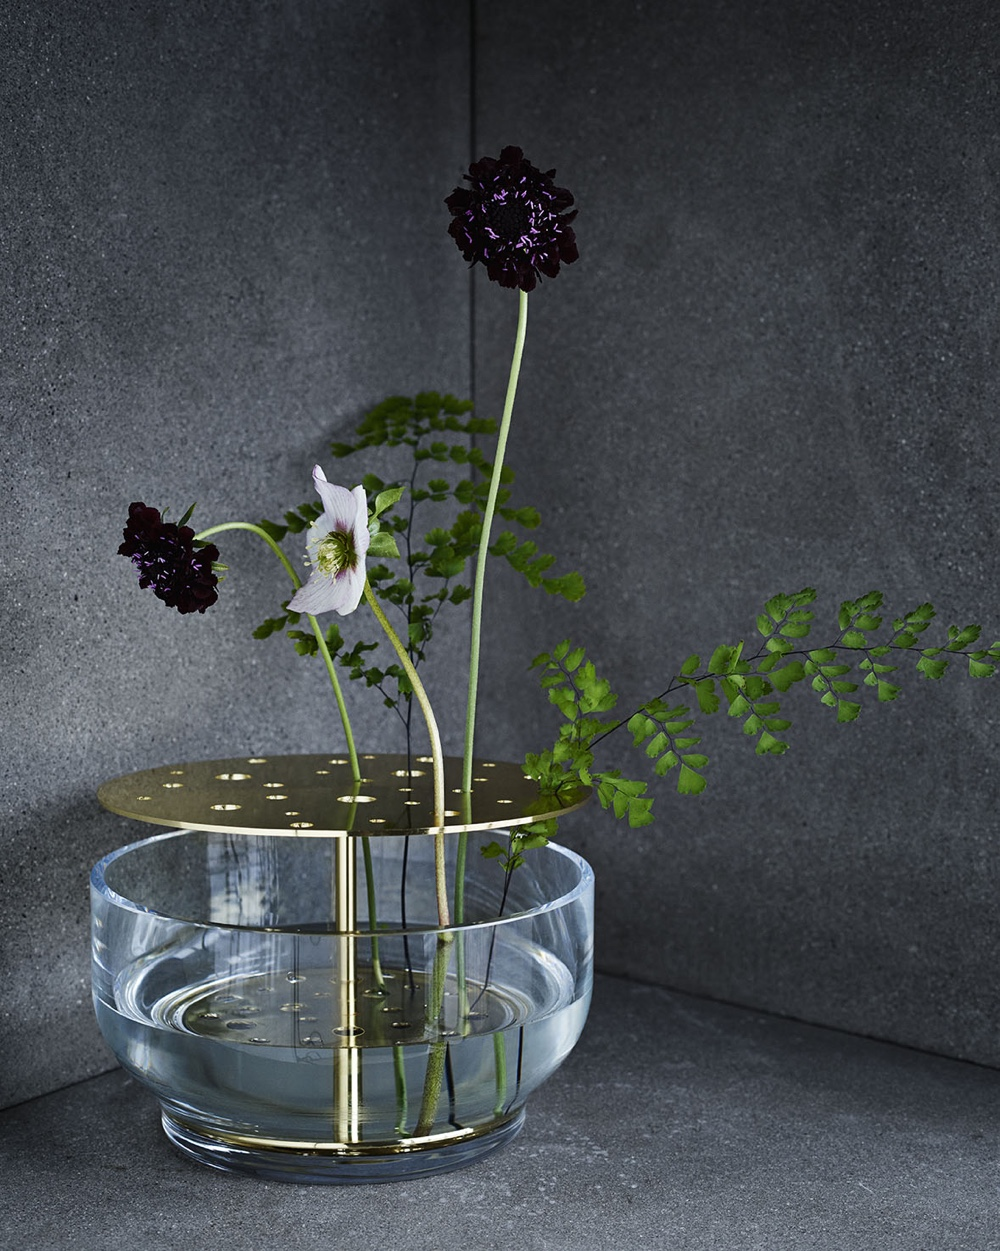 'Ikebana' is the beautiful art form of Japanese flower arranging, where the floral display is governed by strict rules. Reflecting the spirit of Ikebana, Jaime Hayon's blown glass and brass vase will ensure the precise placement of individual stems.